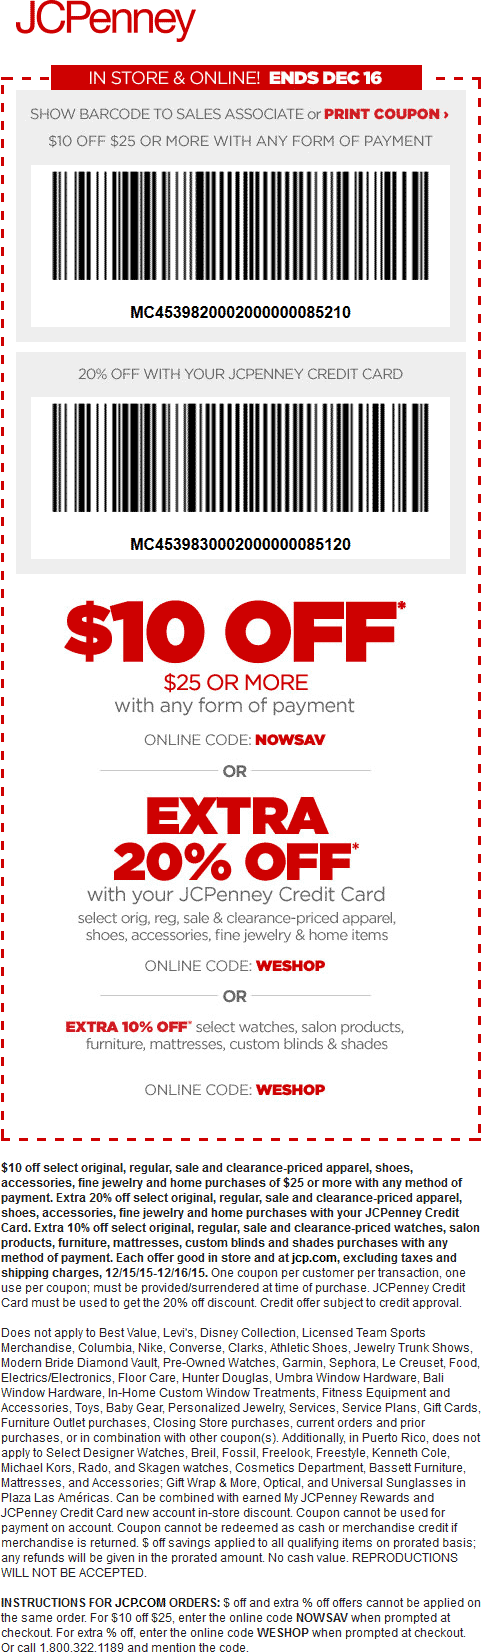 JCPenney Coupon May 2017 $10 off $25 at JCPenney, or online via promo code NOWSAV